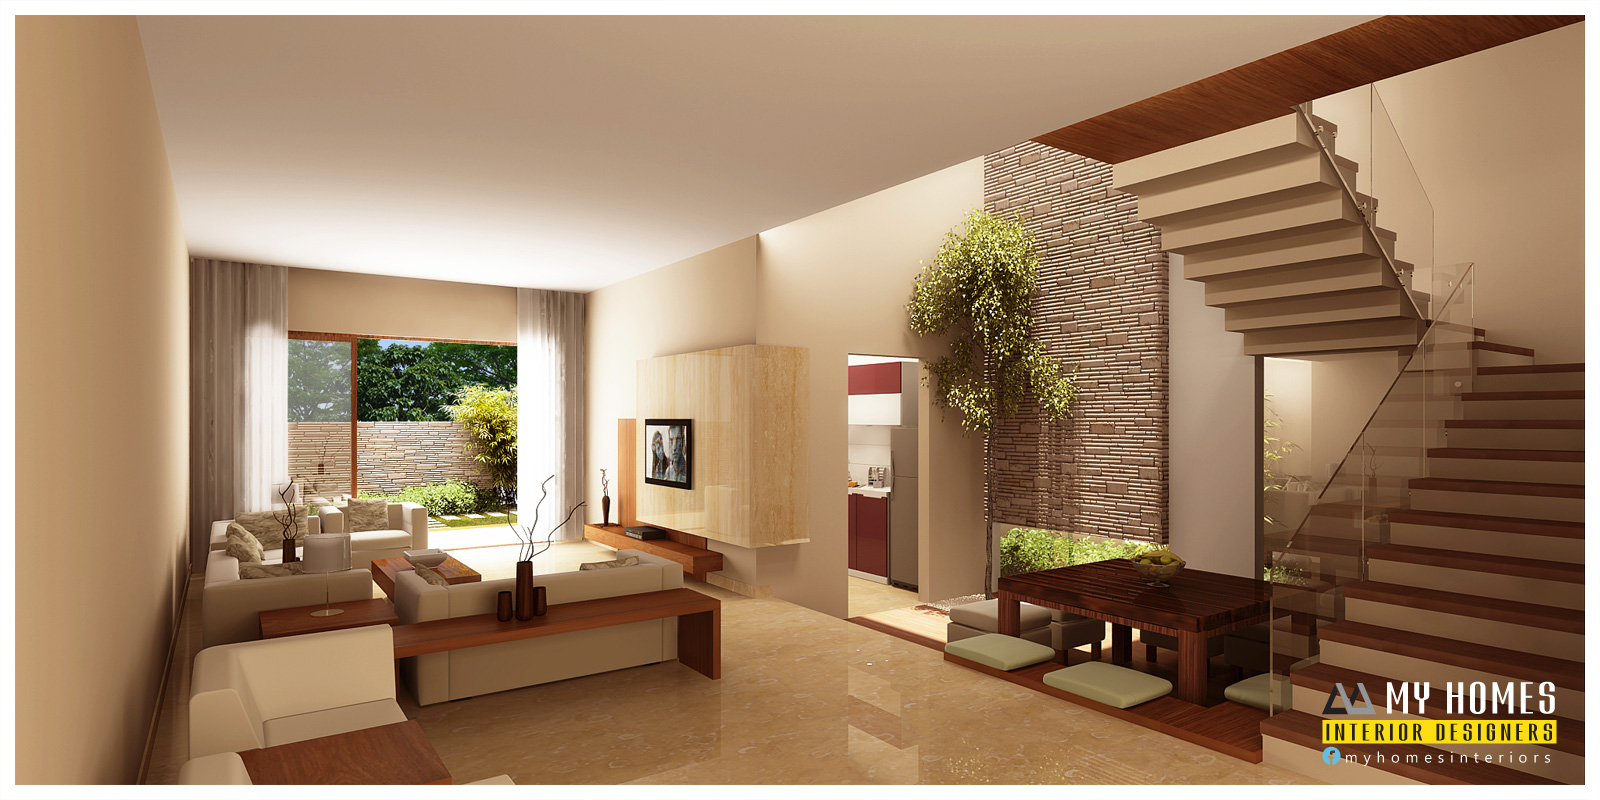 Kerala interior design ideas from designing company thrissur - Modern home design interior ...